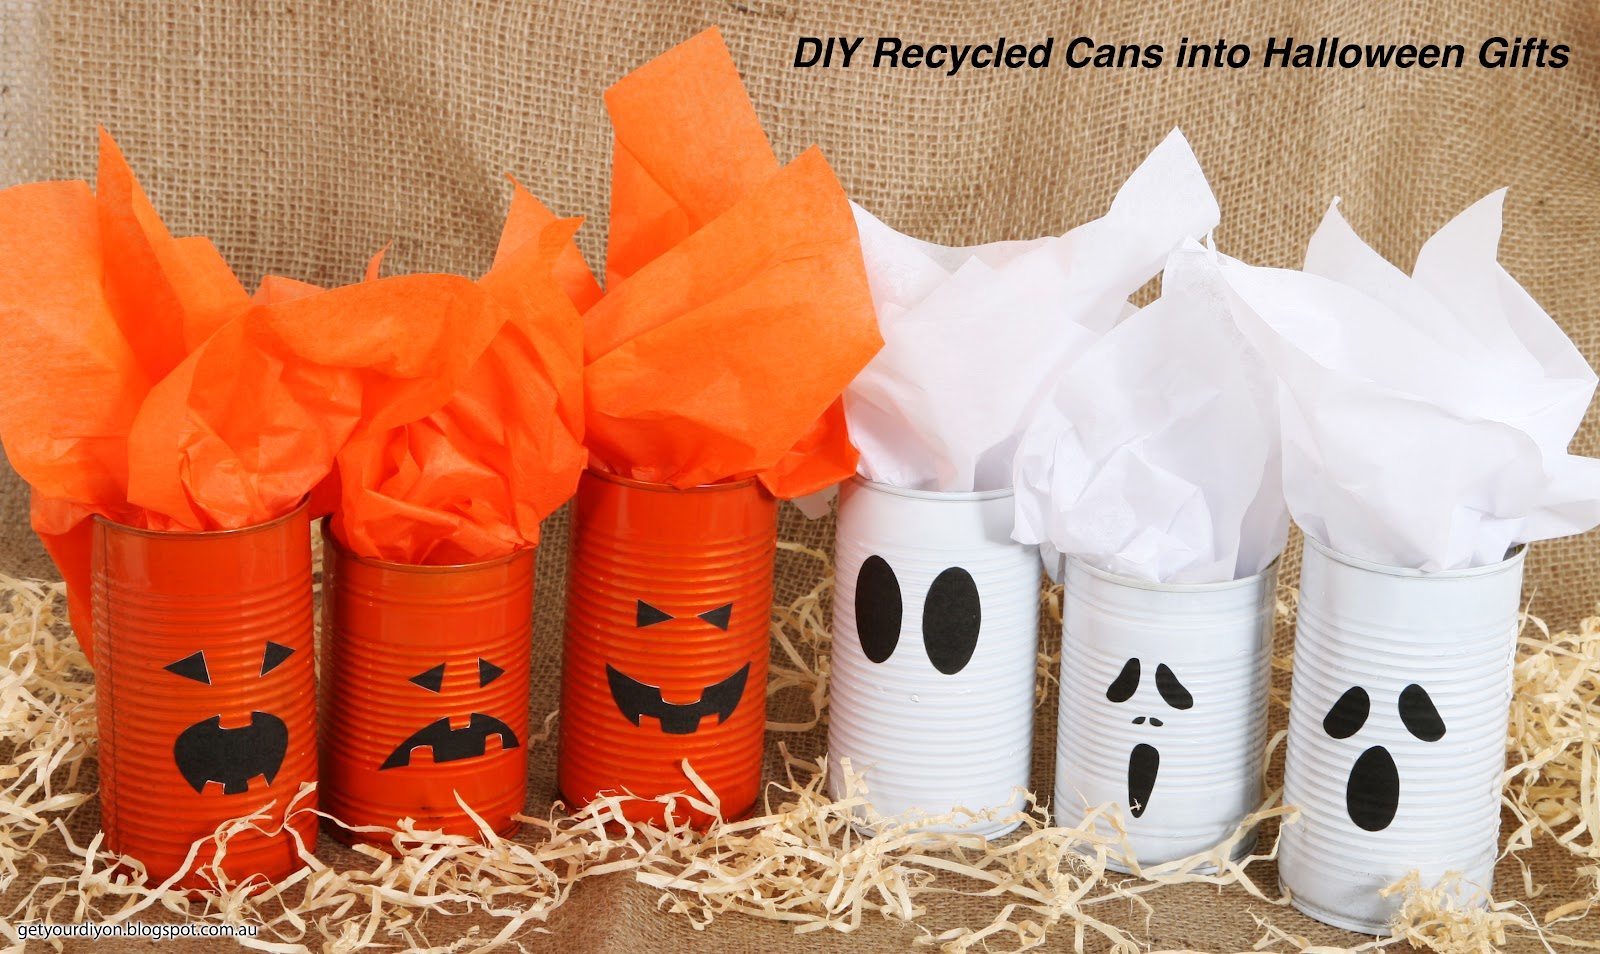 Get Your D.I.Y On!!: D.I.Y - Recycle cans into Halloween Gifts